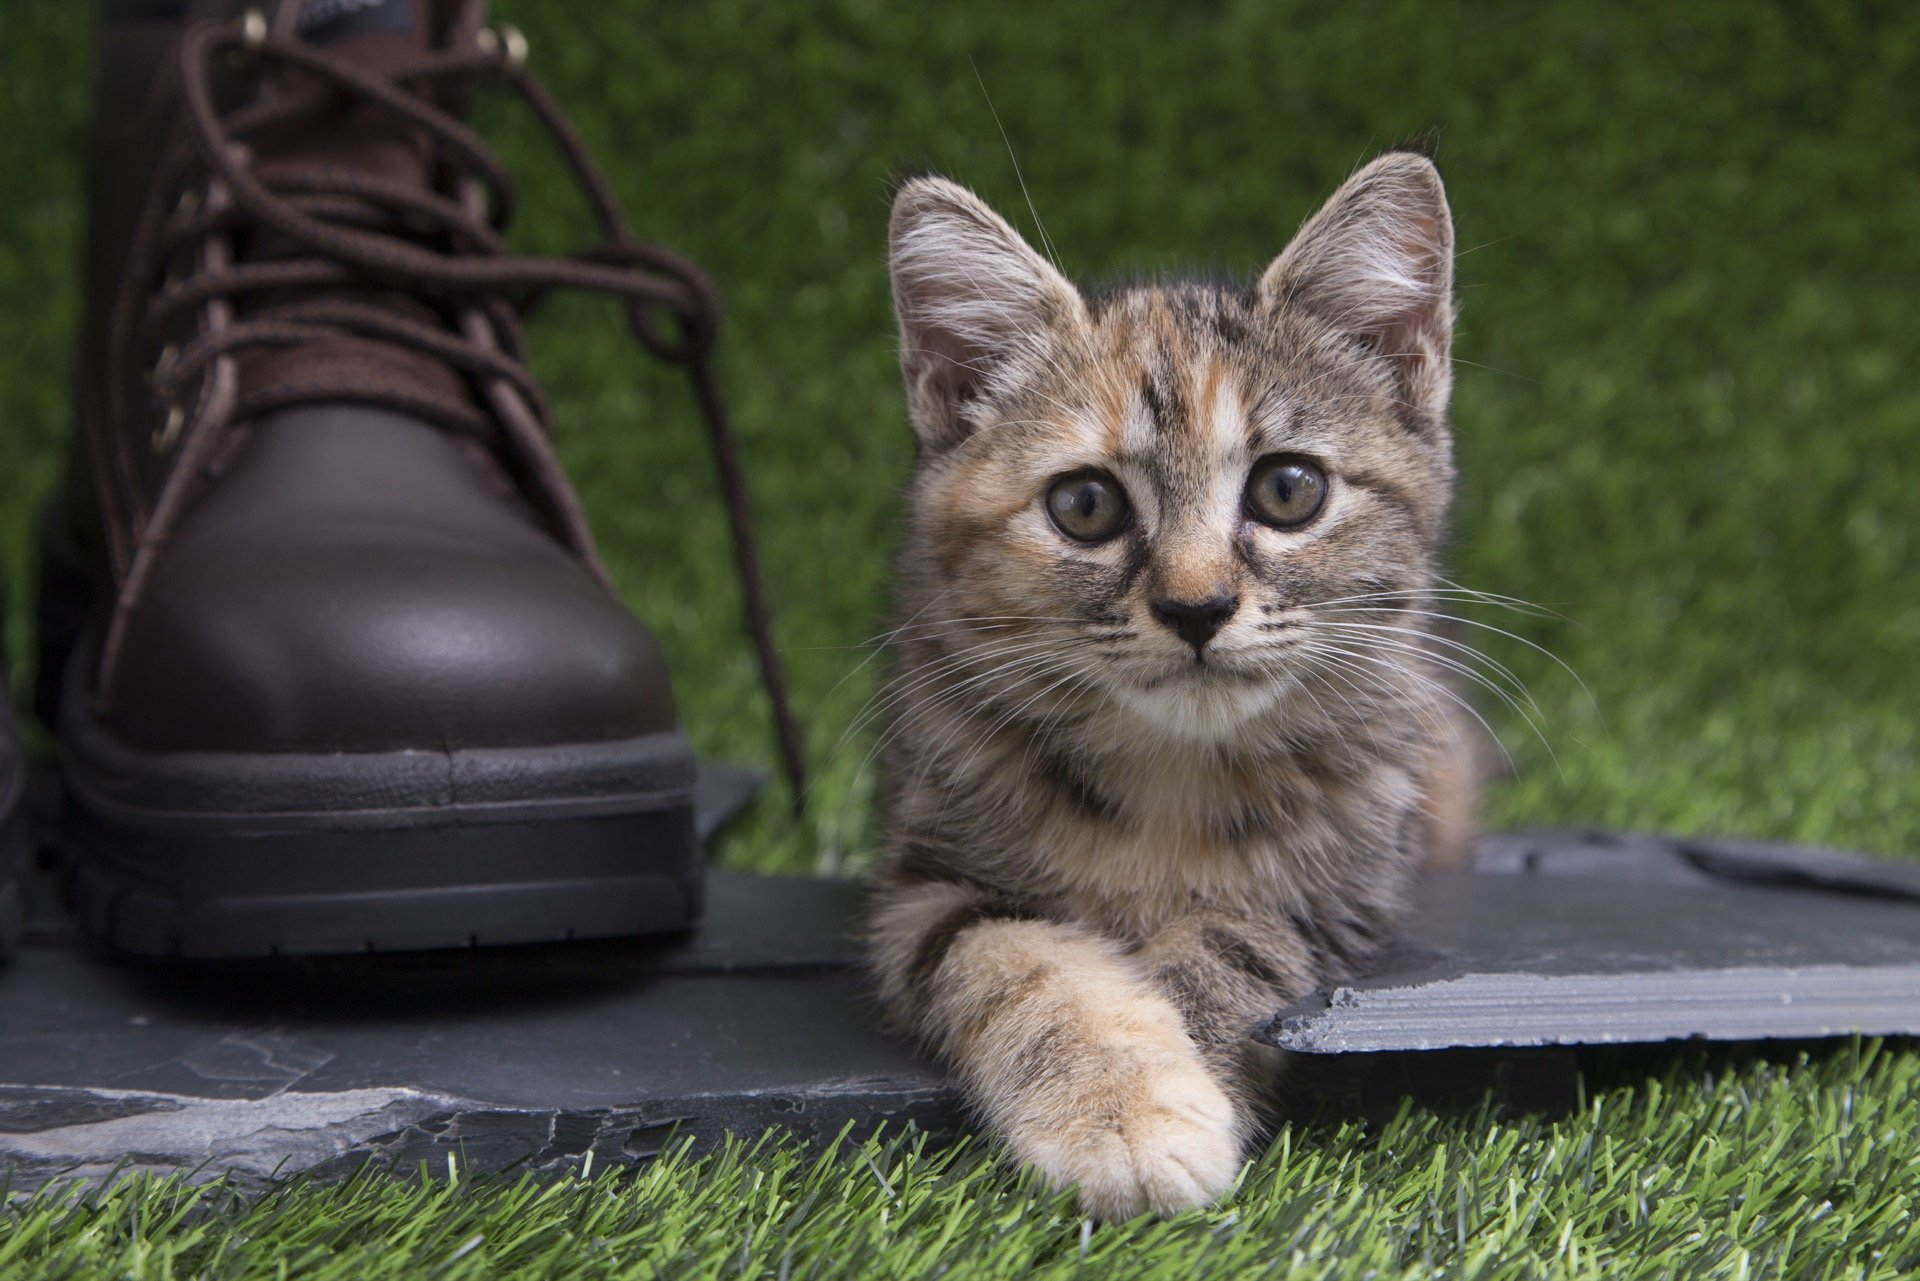 Kitten and boot on artificial grass